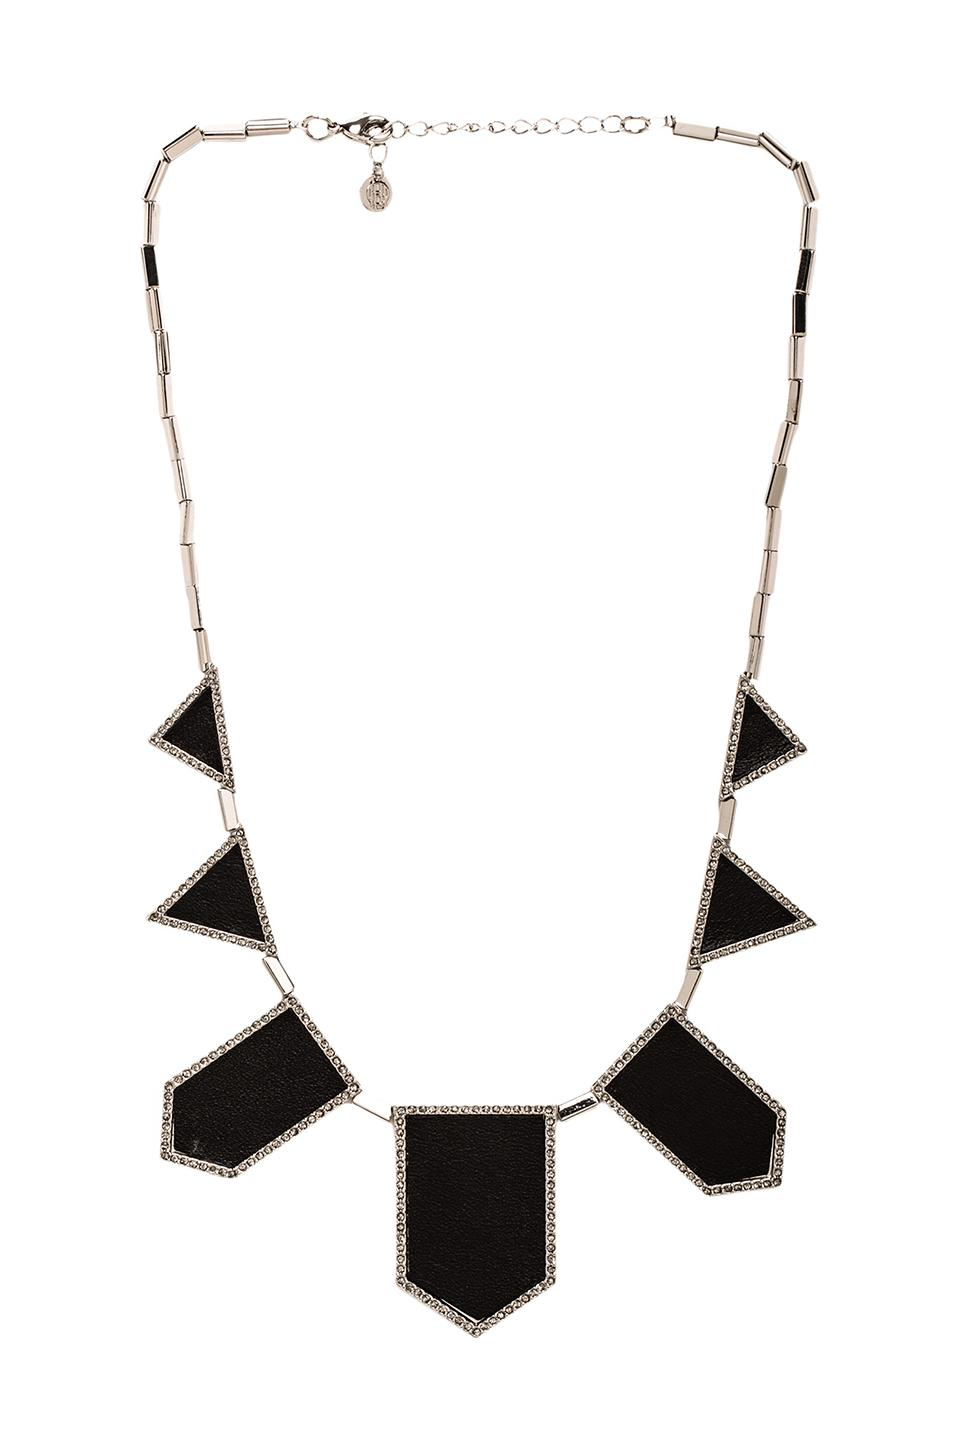 House of Harlow Pave Five Station Necklace in Gunmetal Tone Black